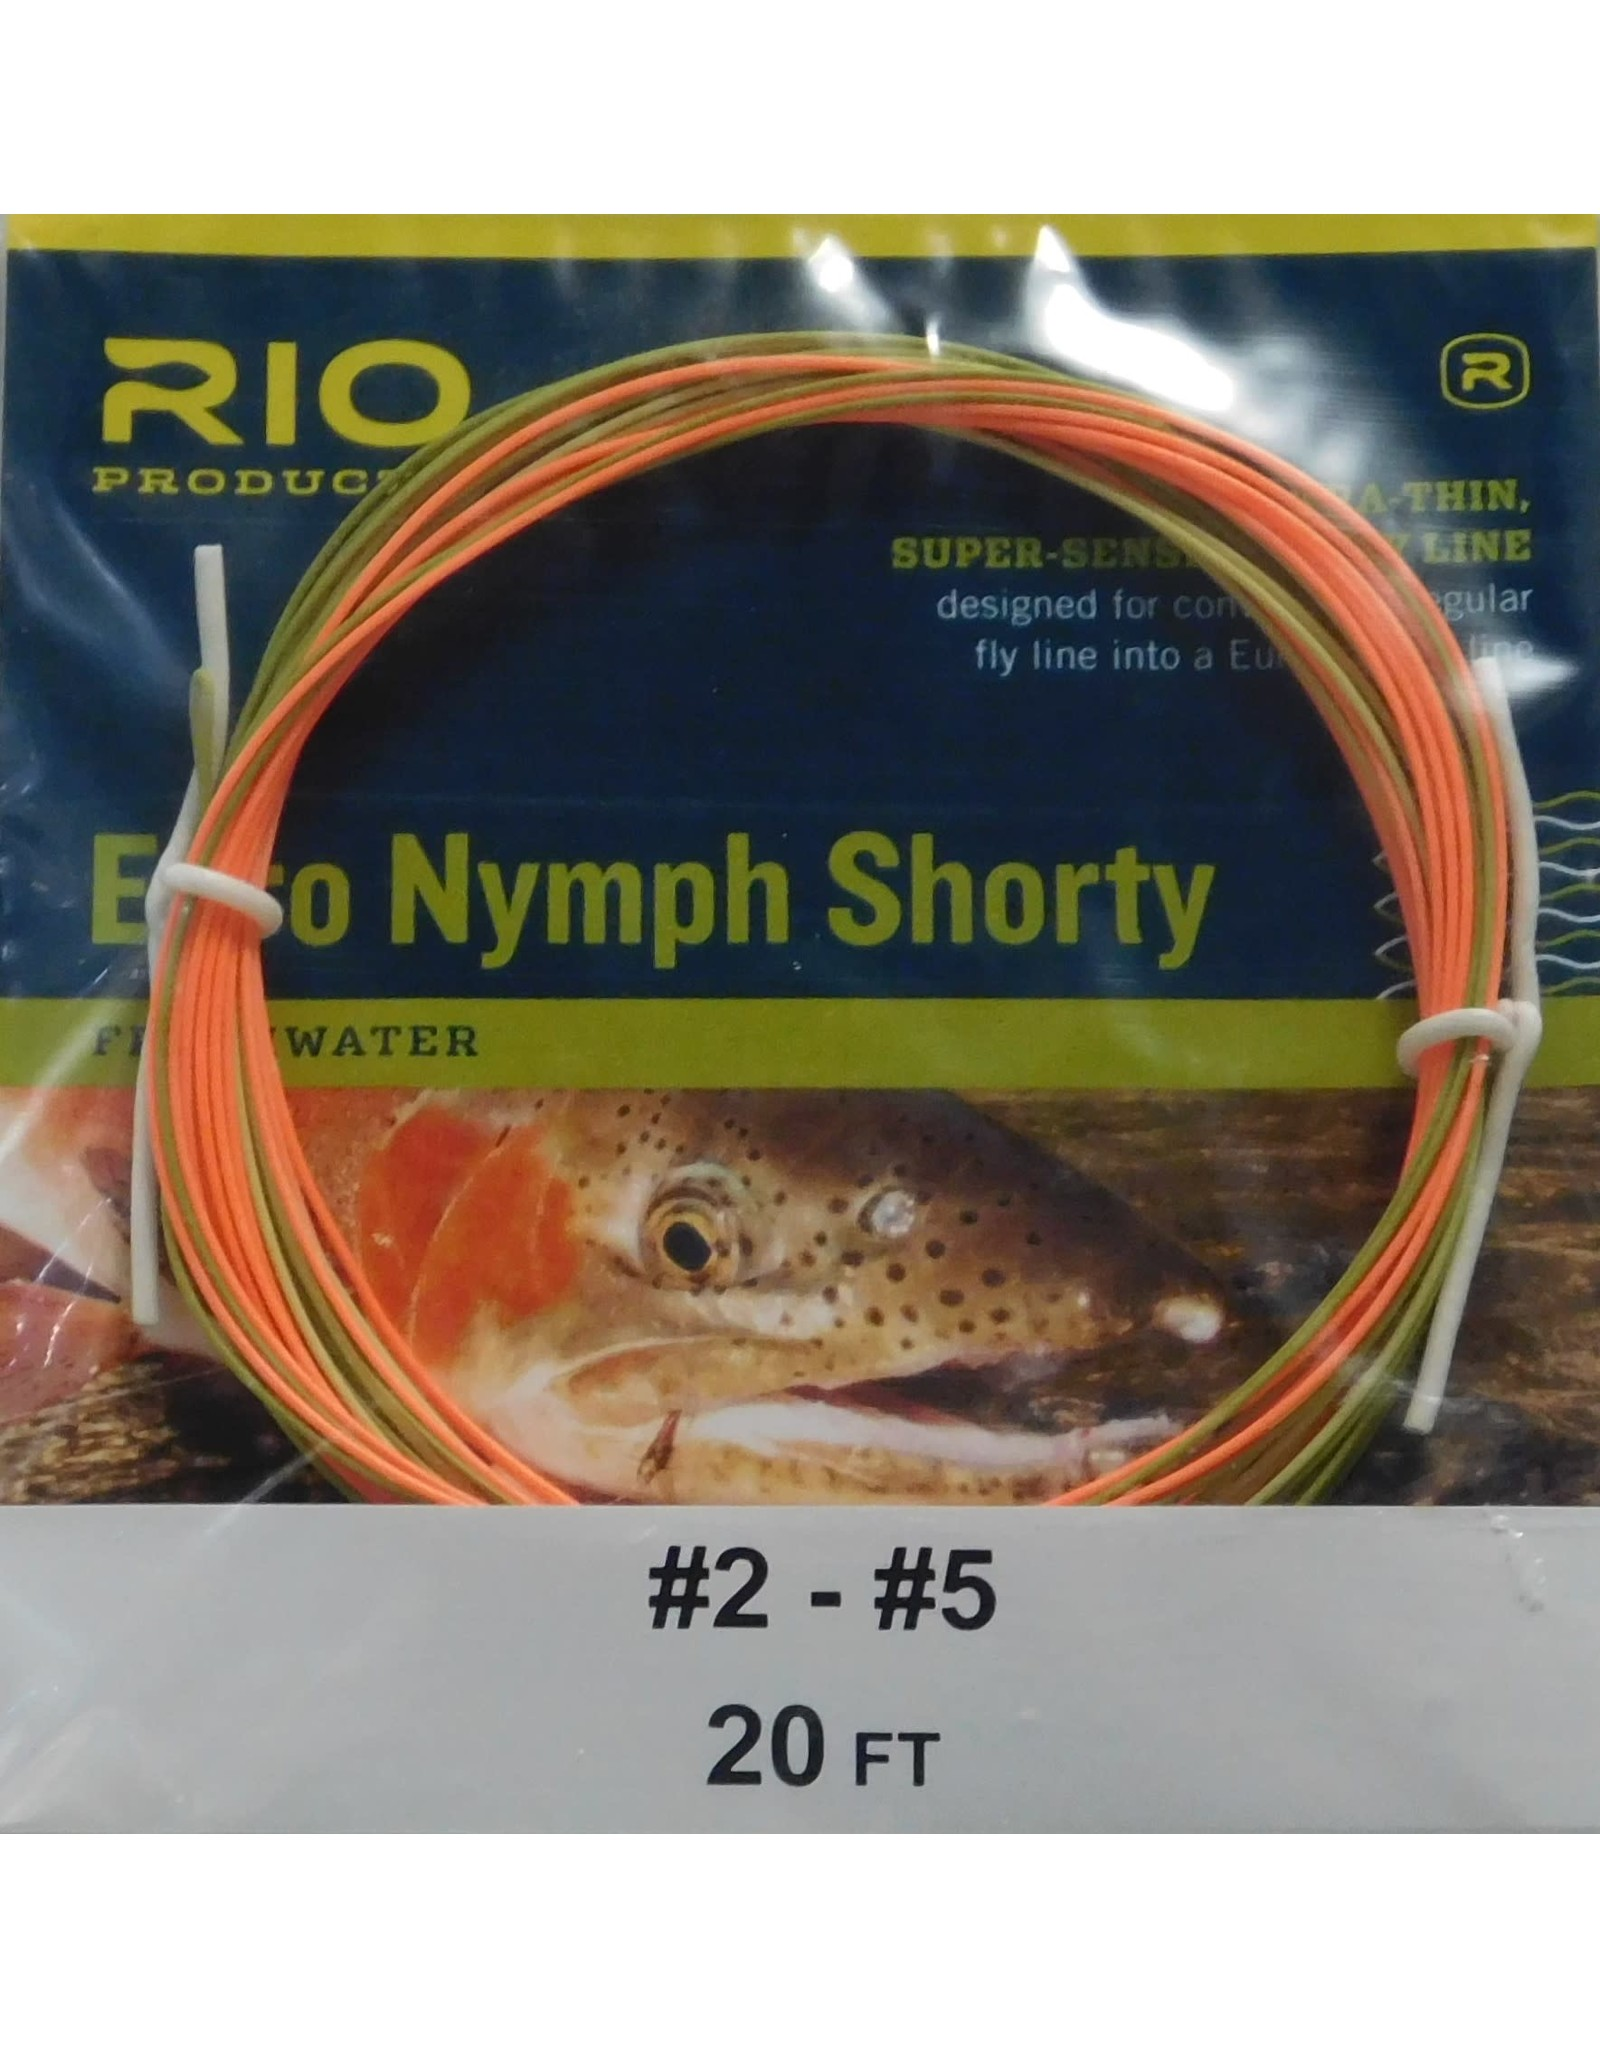 Euro nymph shorty 20ft 2-5